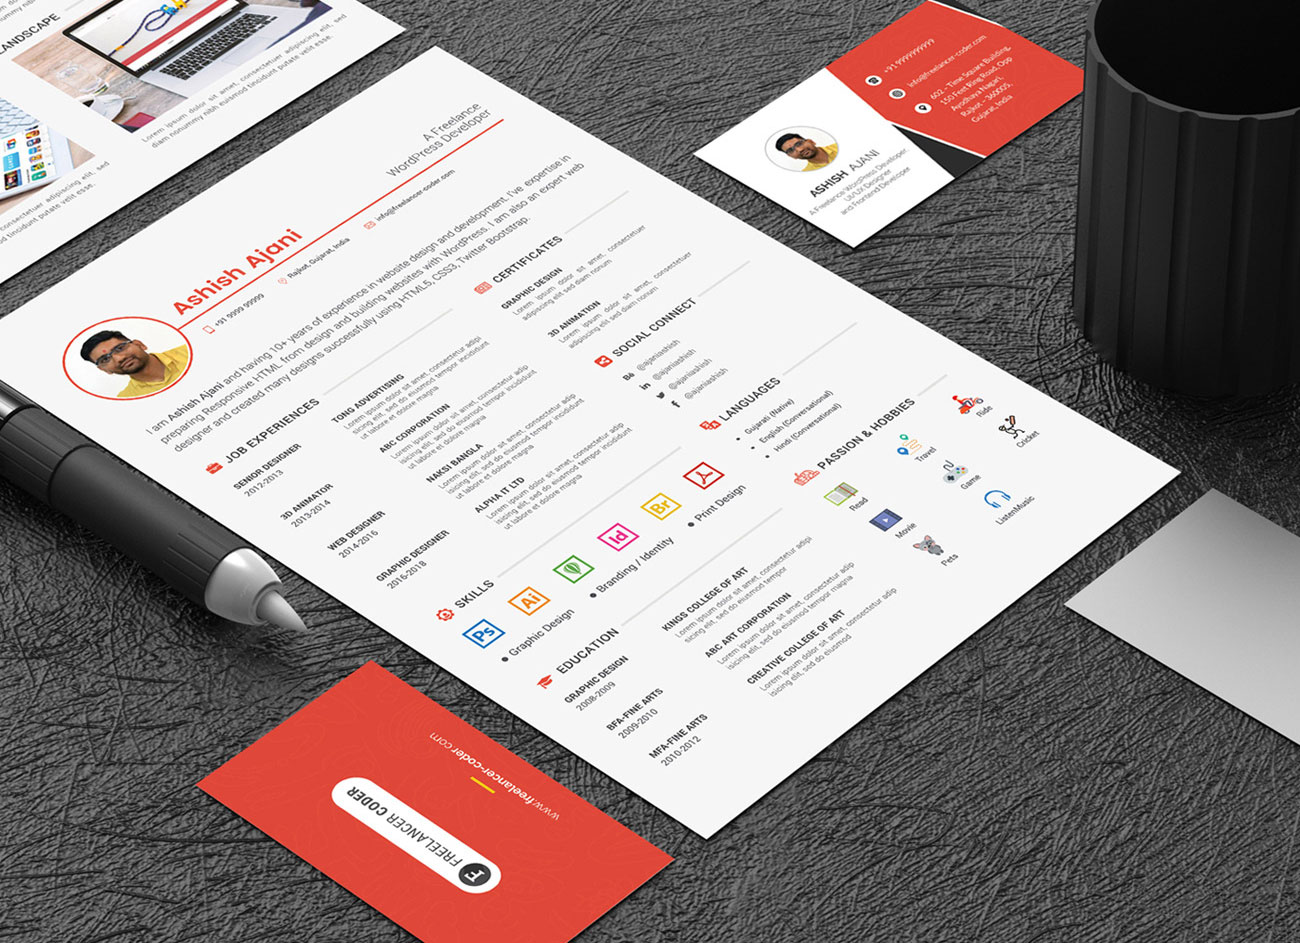 Free-PSD-Resume-Template-&-Cover-Letter-for-PHP-&-Wordpress-Developer-5